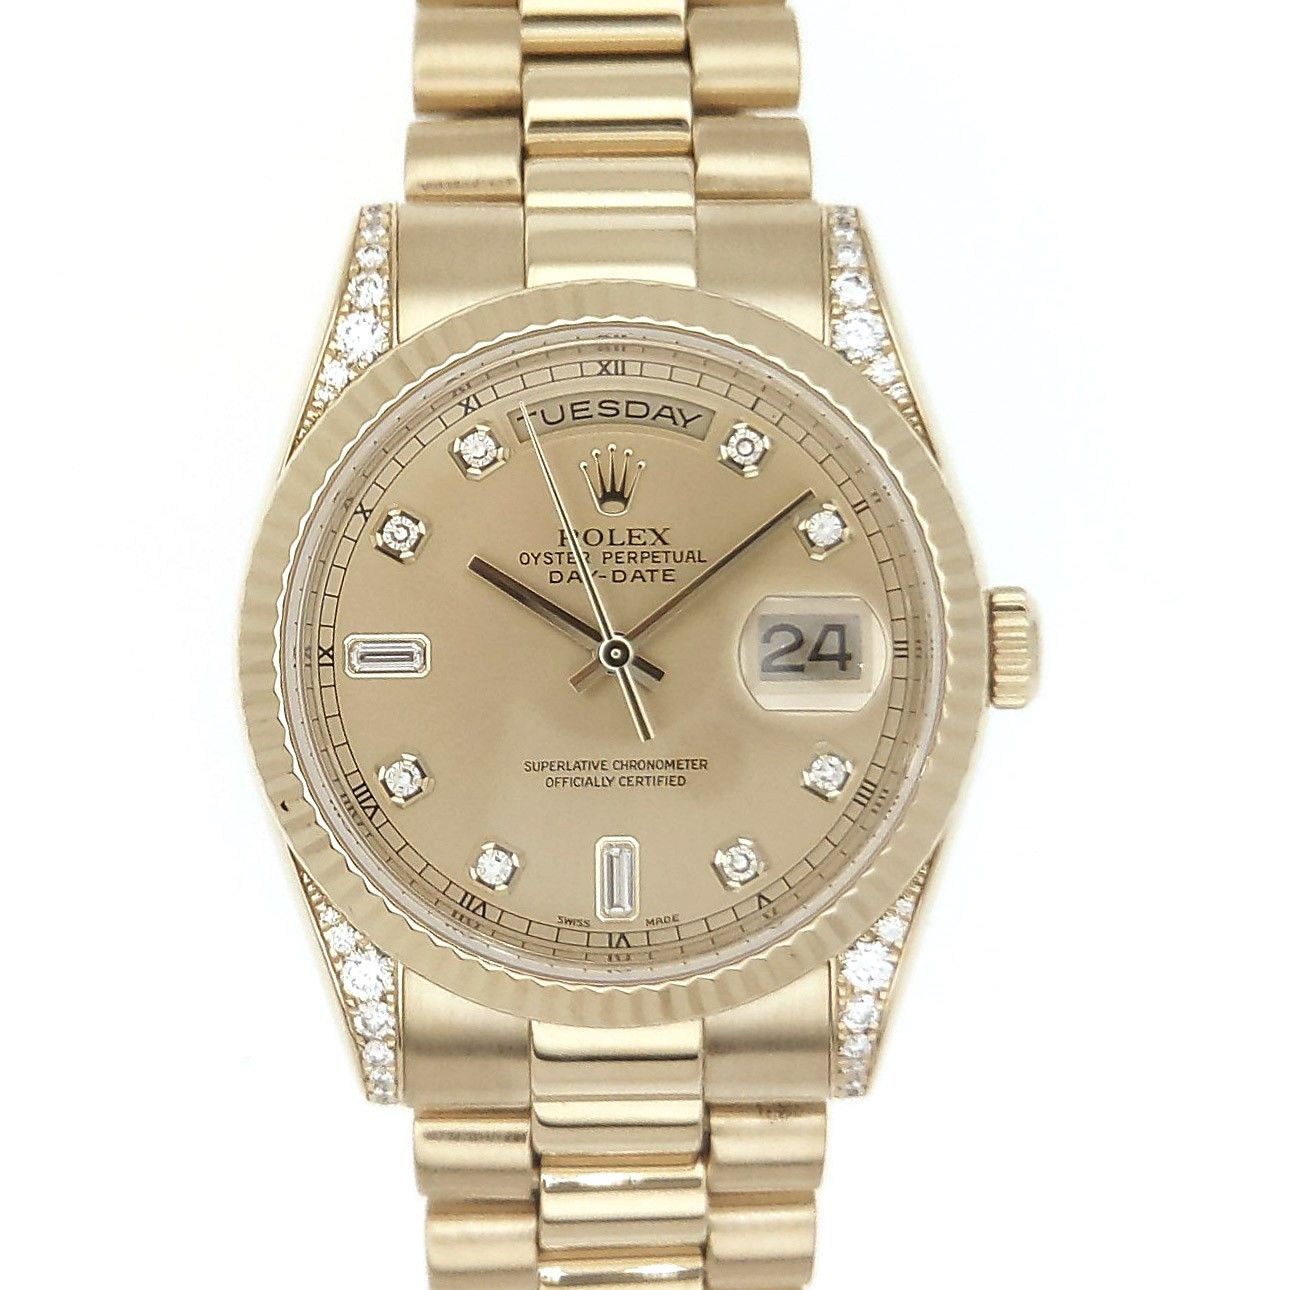 277c12c668a Rolex DayDate President Yellow Factory Gold Champagne Diamond Dial & Lugs  118238